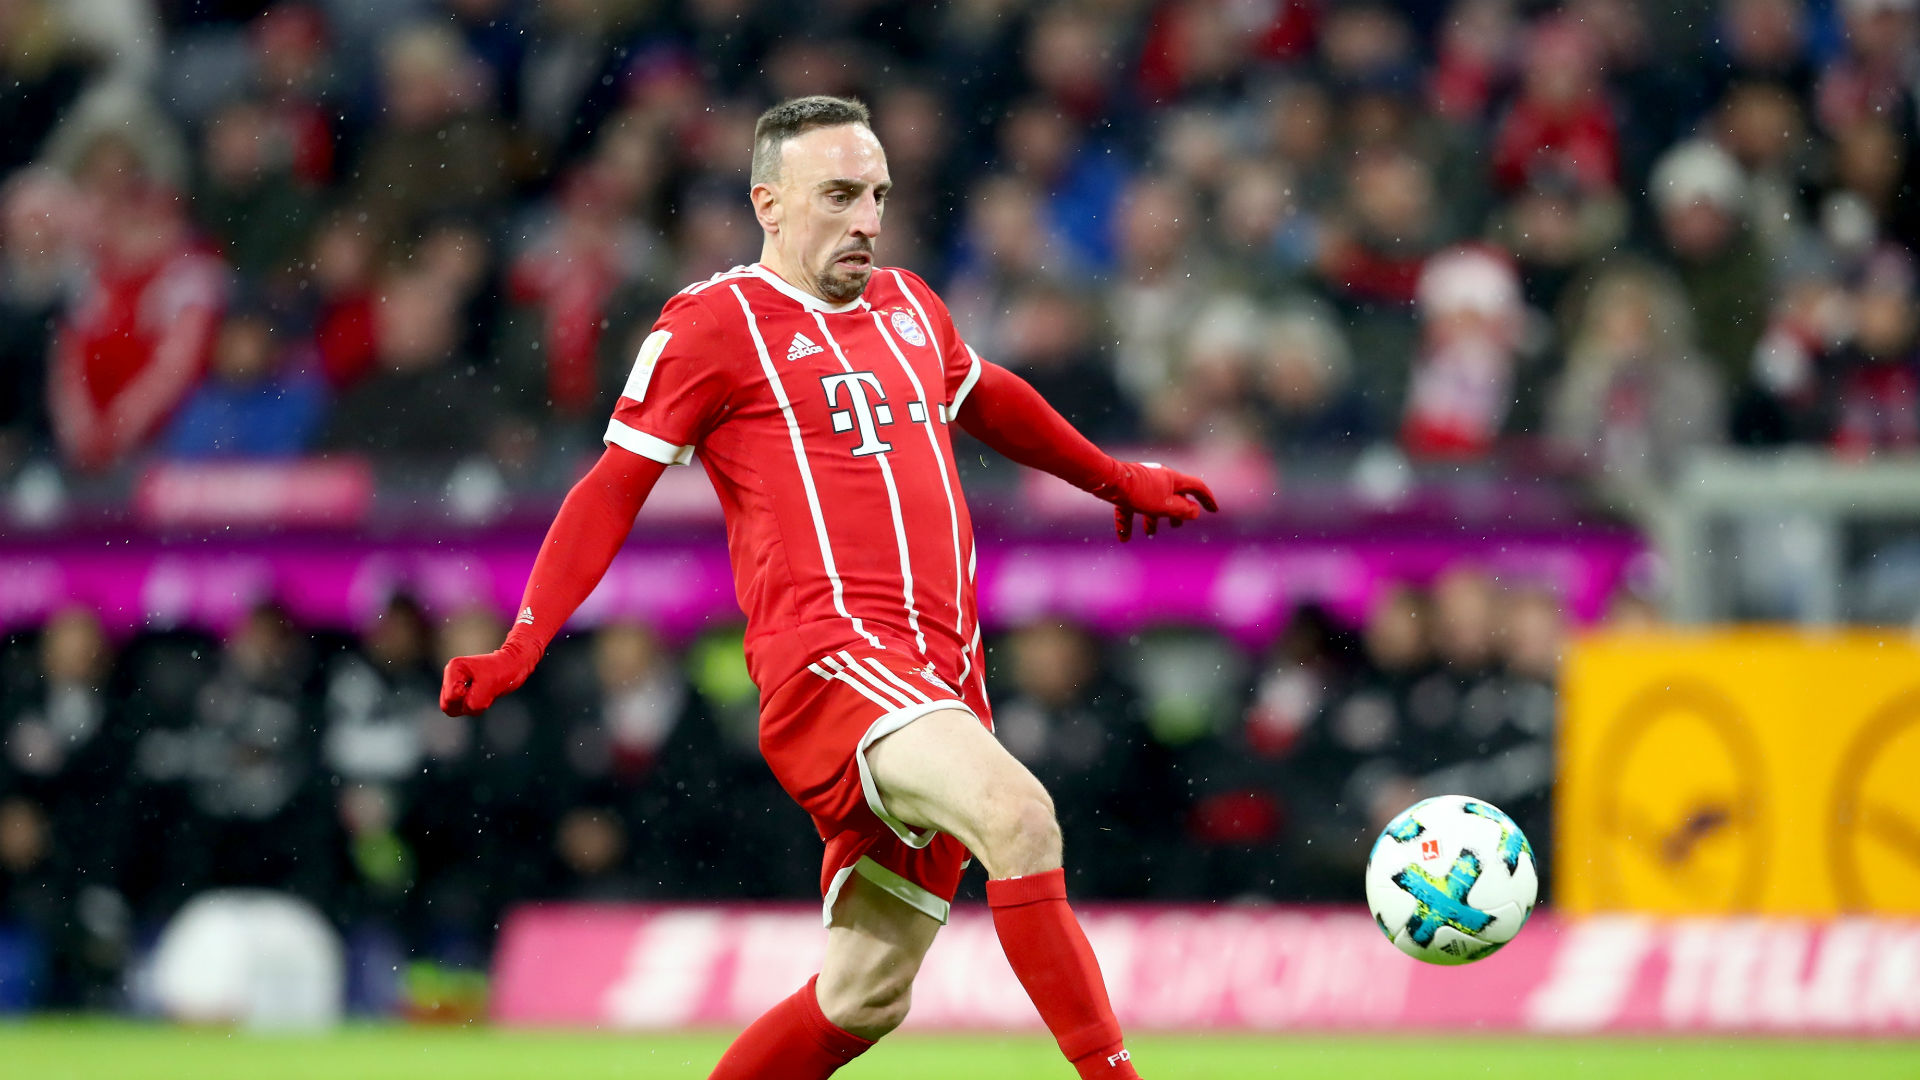 Bundesliga Recap: Bayern beat Cologne, Schalke reclaim second place